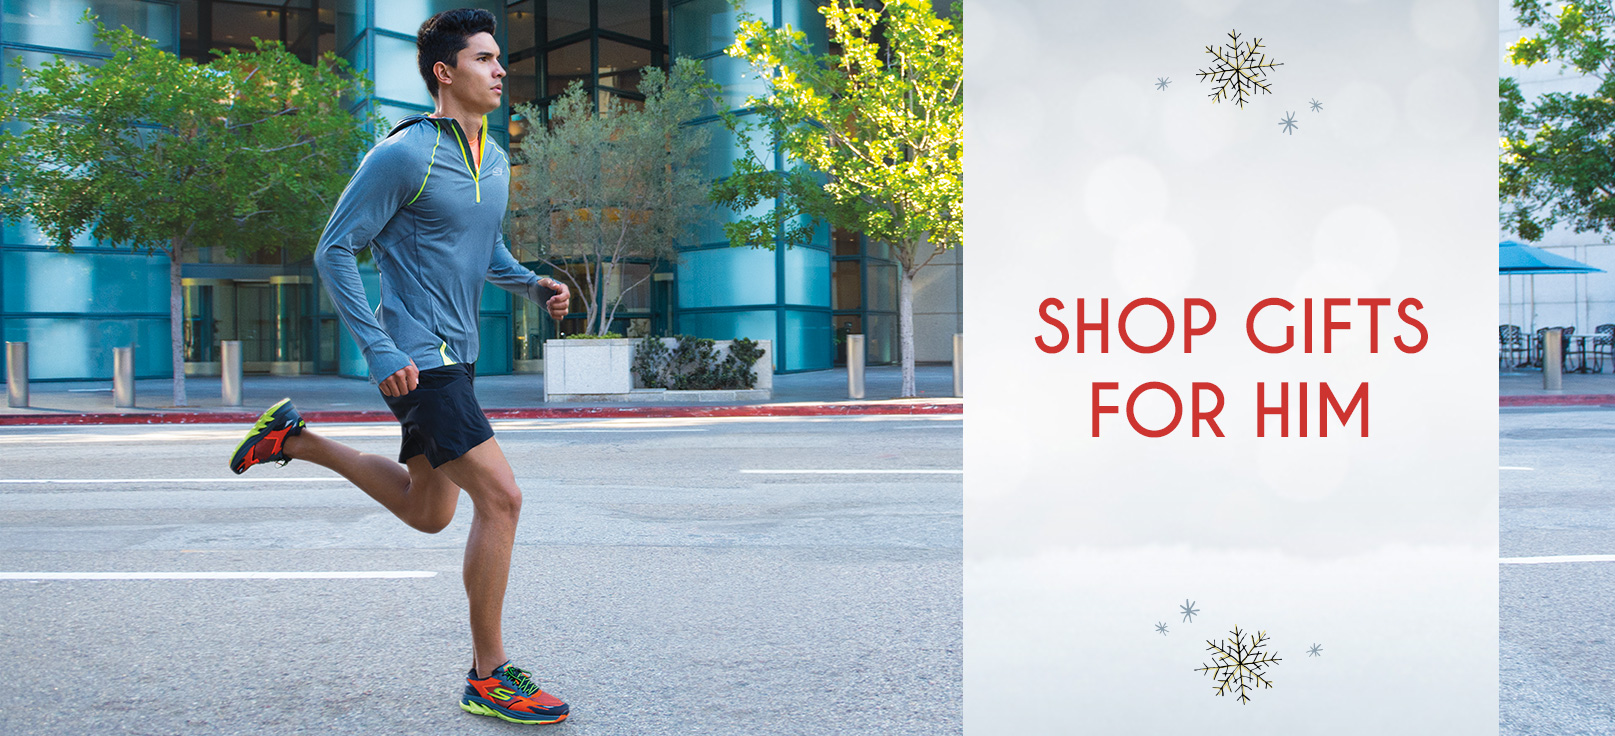 Shop for Skechers Performance Holiday Gifts for men including running shoes, athletic walking shoes, golf shoes and Skechers Performance On the GO shoes